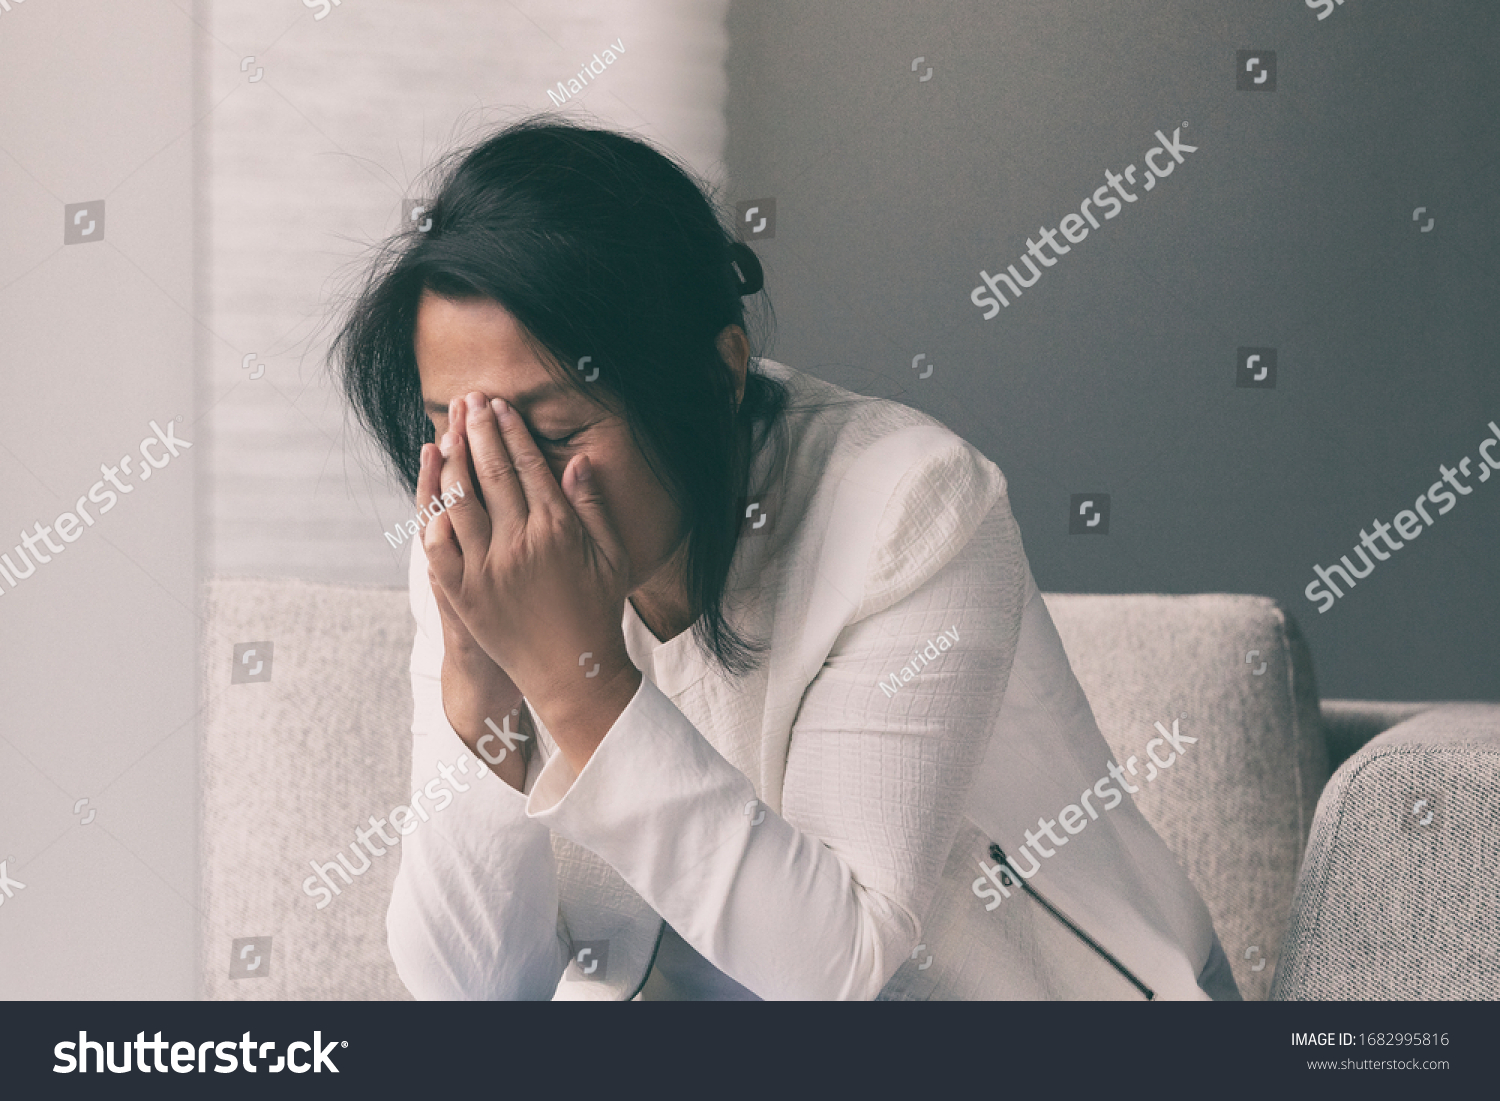 Coronavirus COVID-19 impact on retail businesses shut down causing unemployment financial distress. Depressed crying business woman stressed with headache. #1682995816